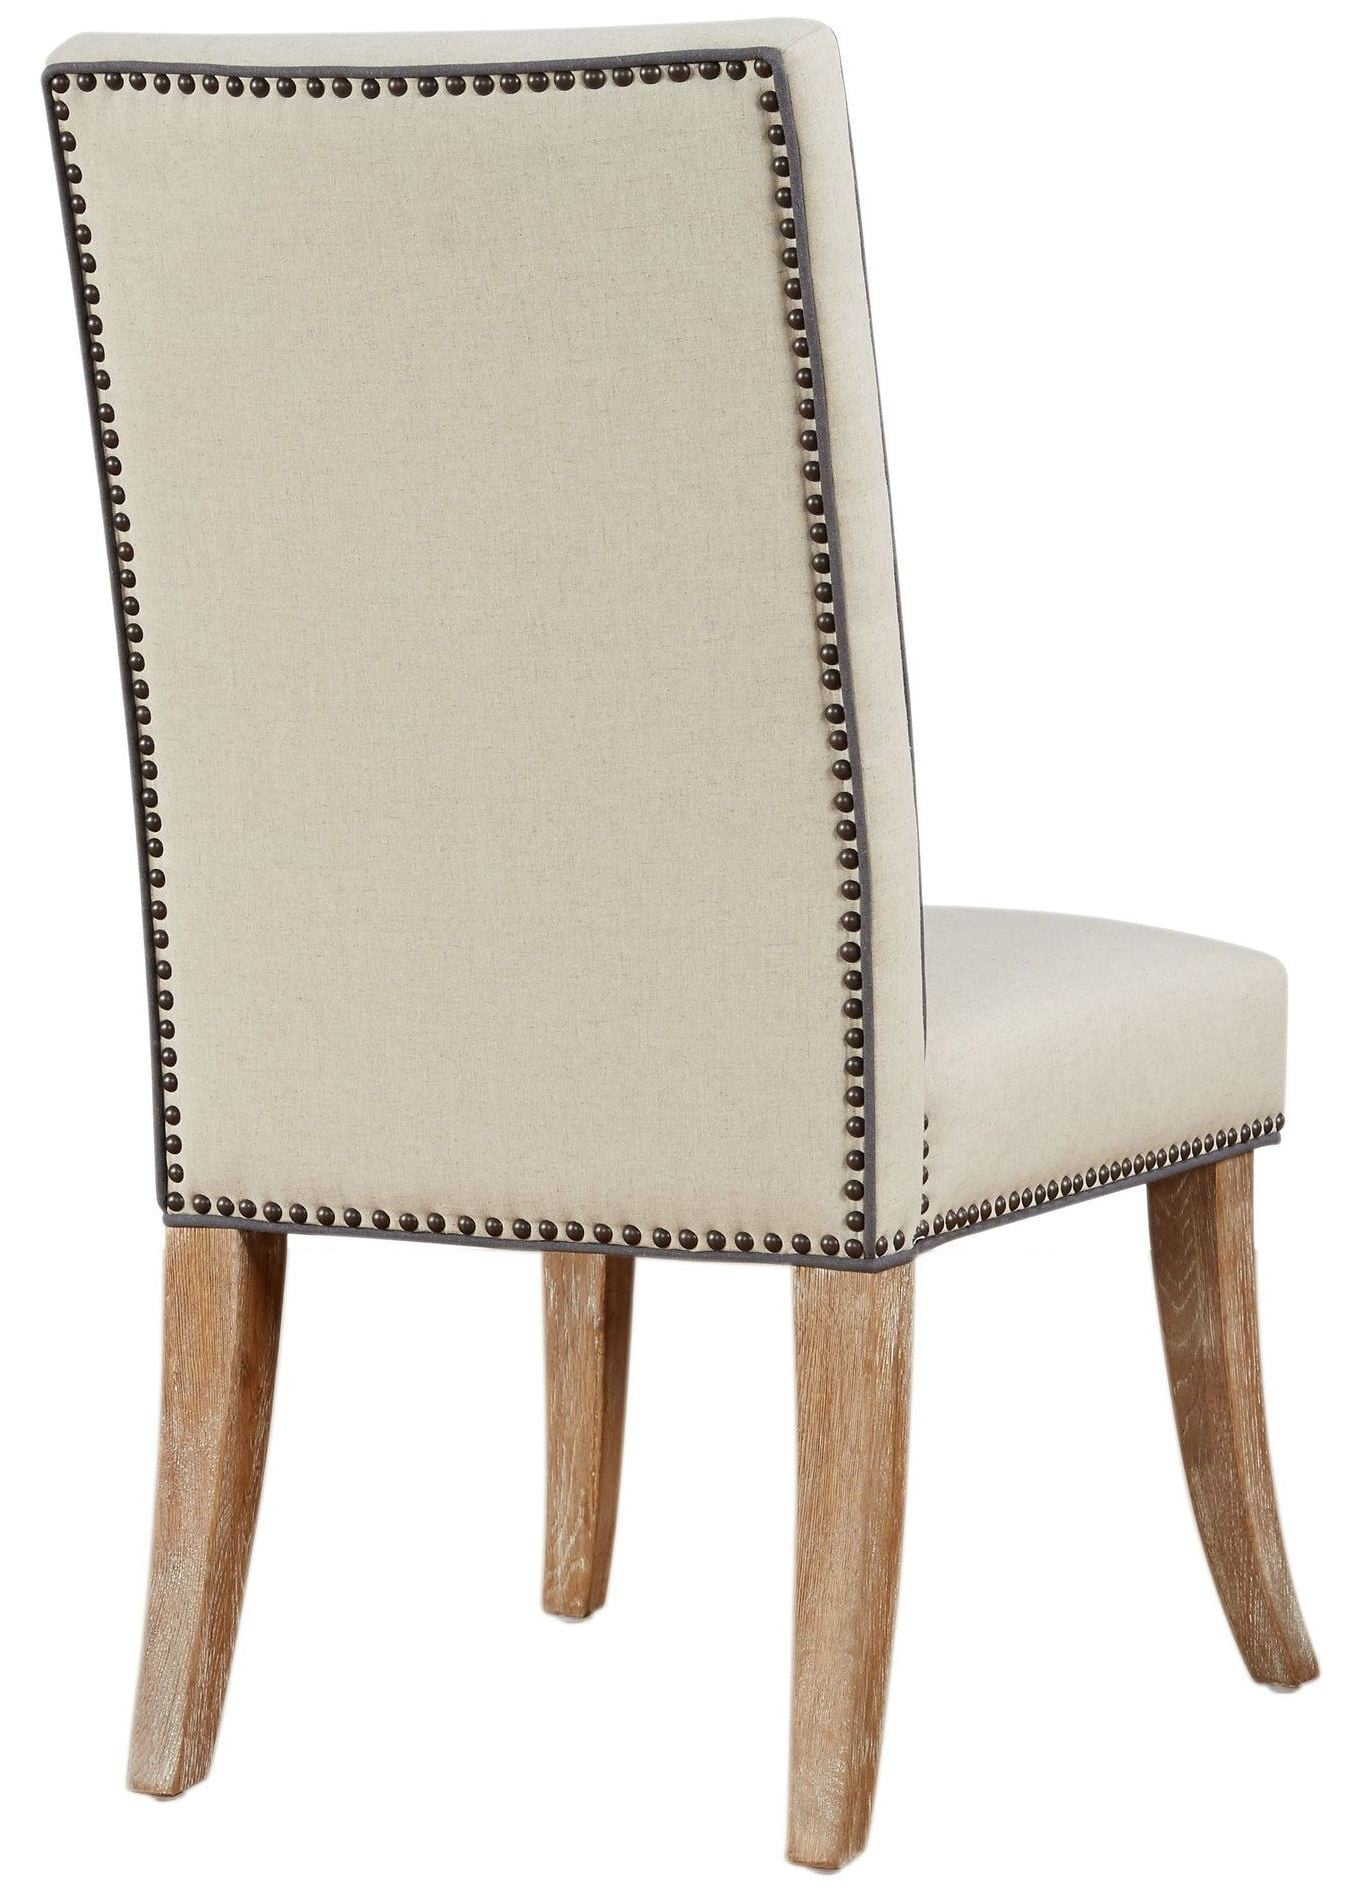 beige dining chairs folding chair weight limit garrett linen set of 2 d2046 tov